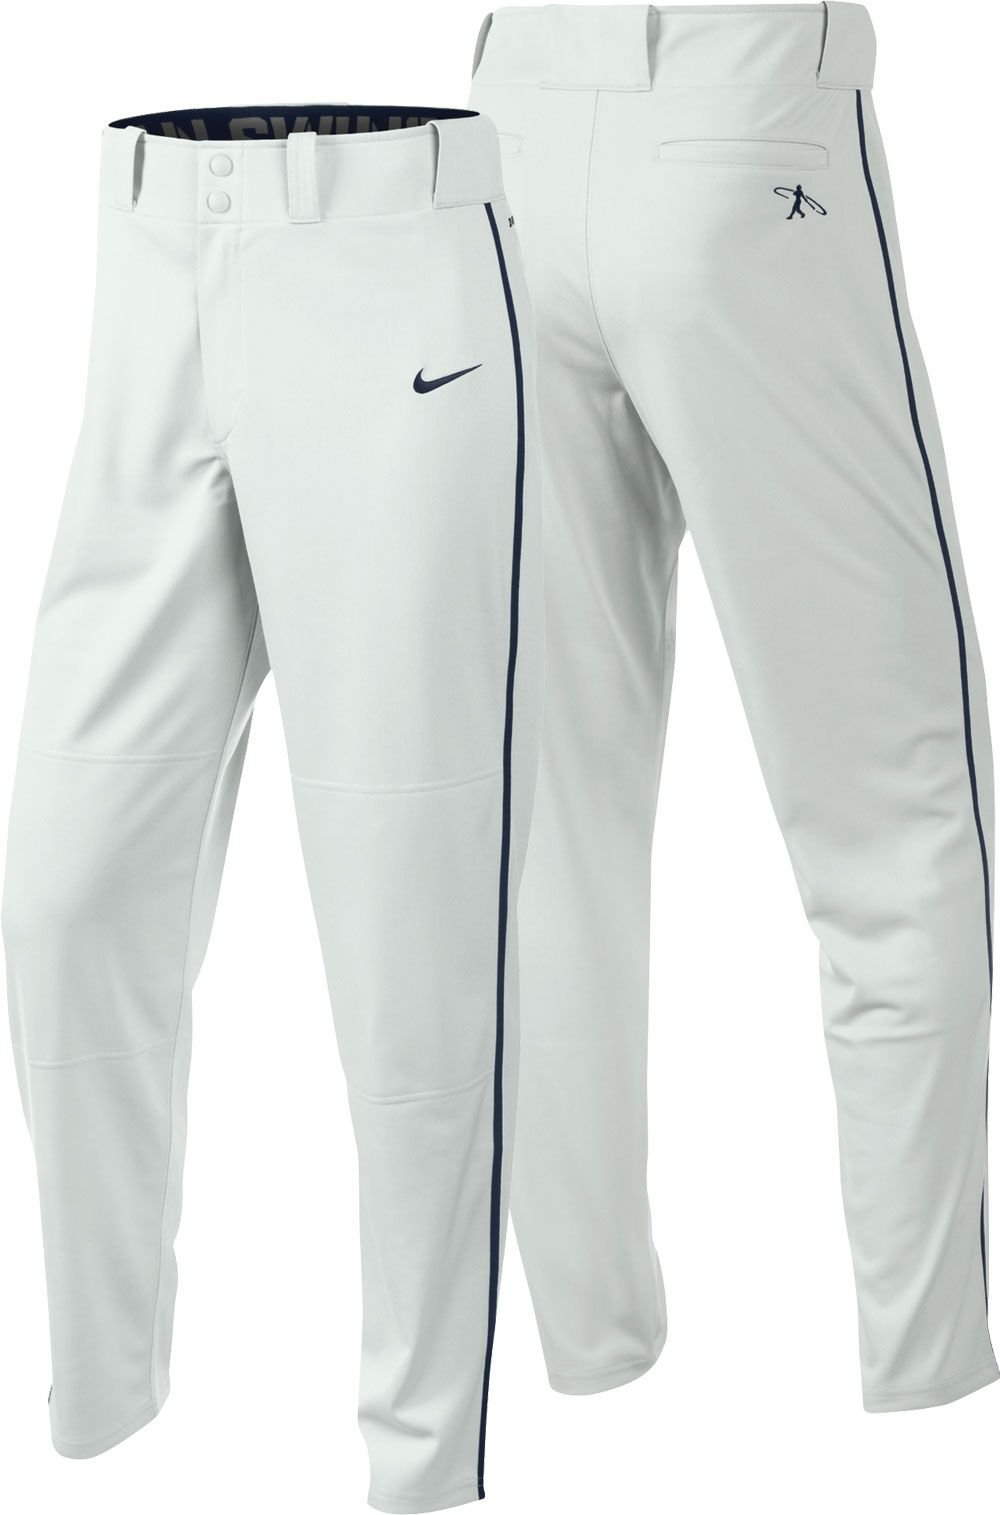 Nike Boys Swingman Dri-FIT Piped Baseball Pants (White/Navy, Small) by Nike (Image #1)